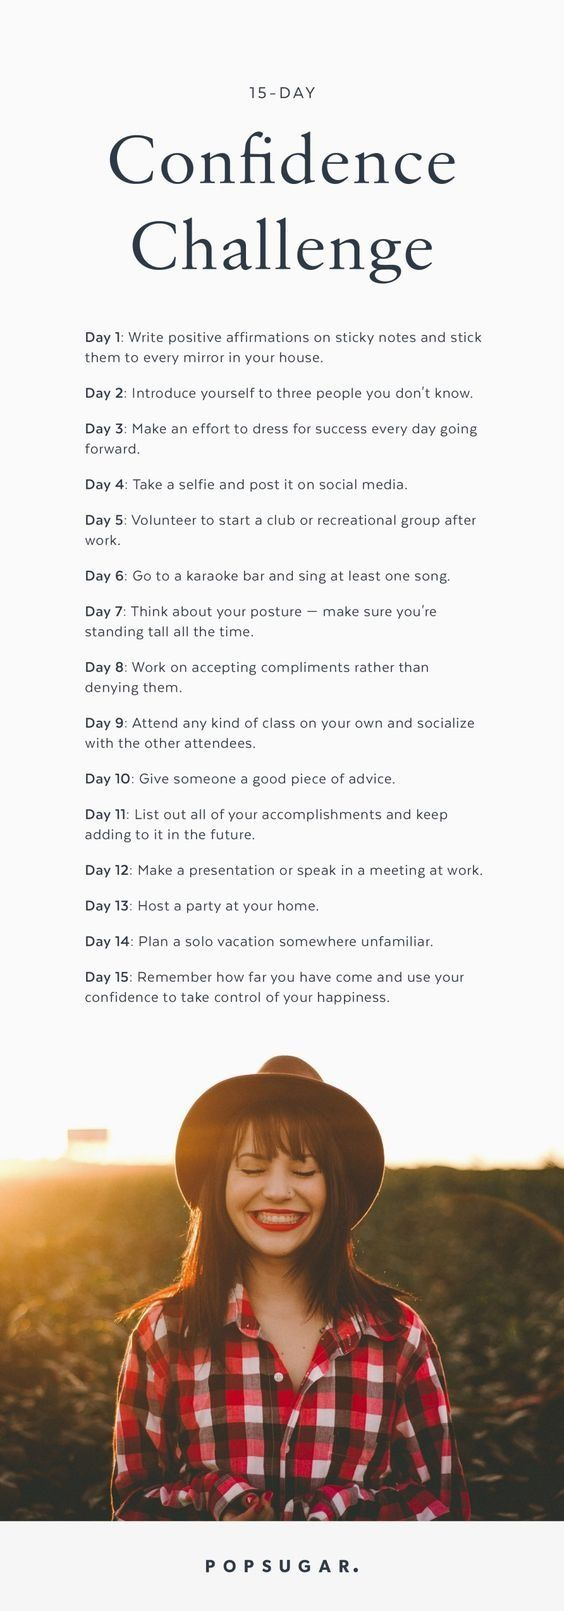 The 15-Day Confidence Challenge: Believe in Yourse